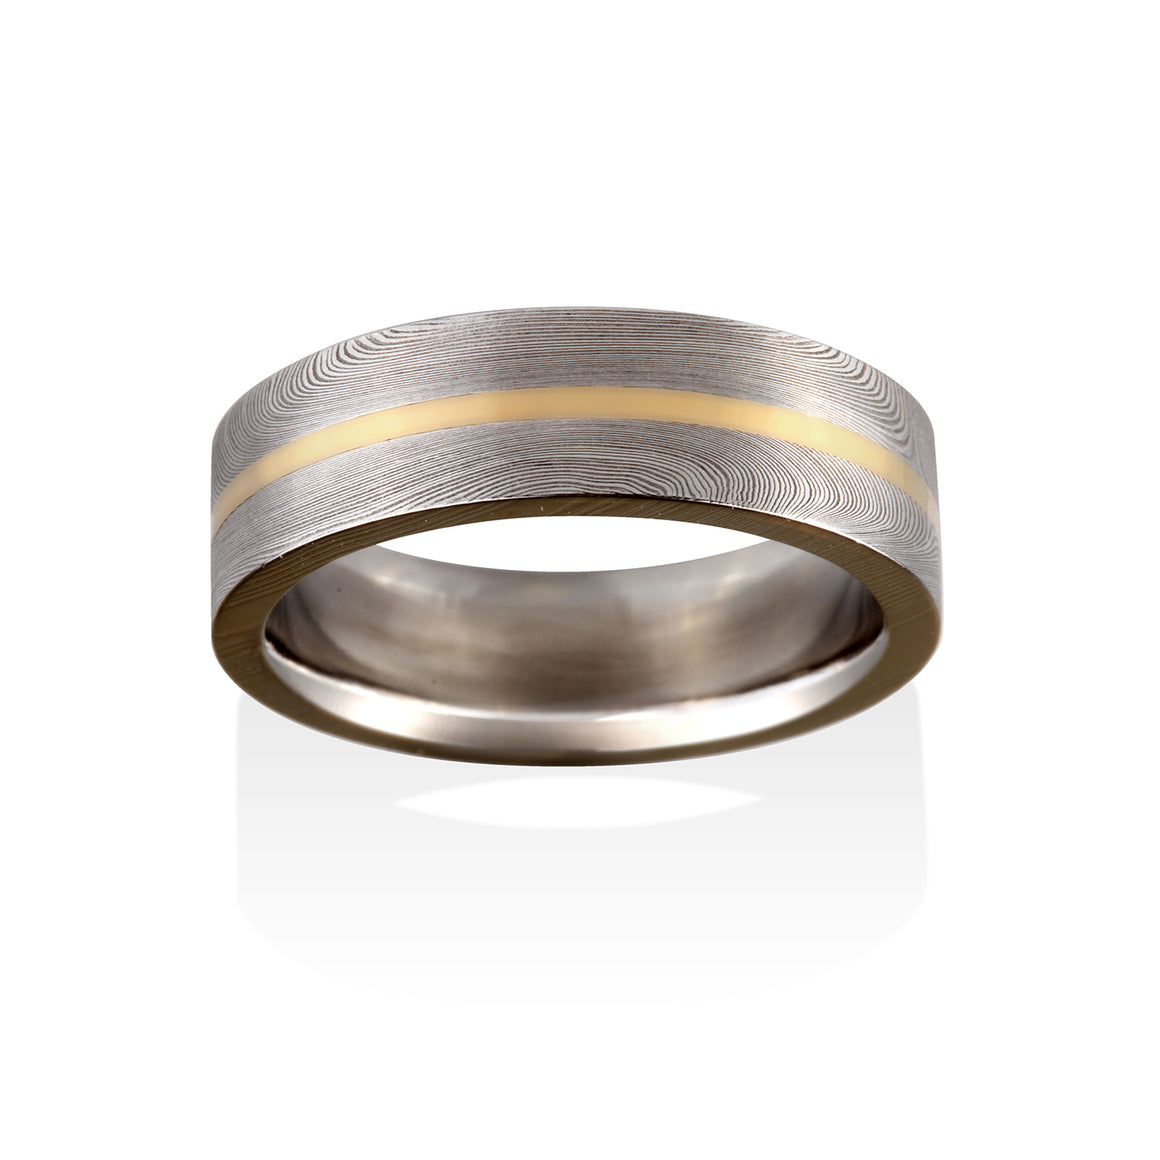 Chris Ploof 18K Yellow Gold Inlay Starlight Damascus Ring